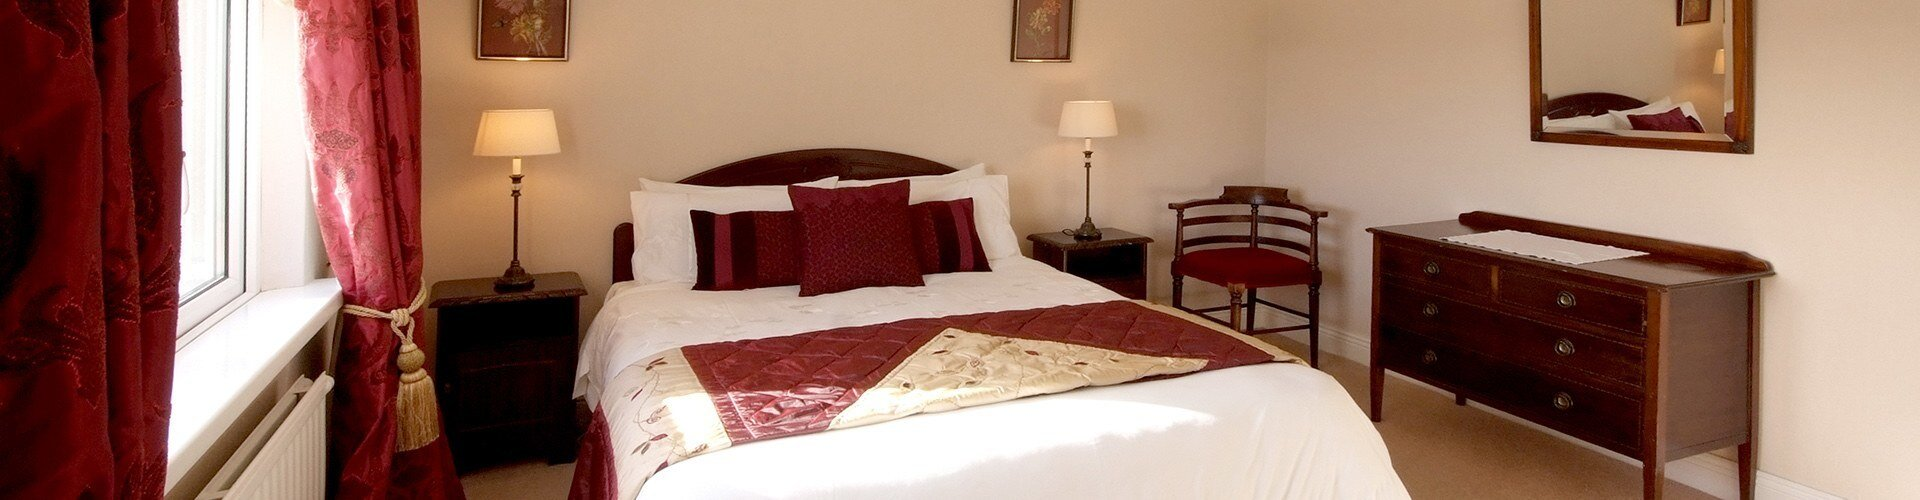 comfortable rooms self-catering apartment